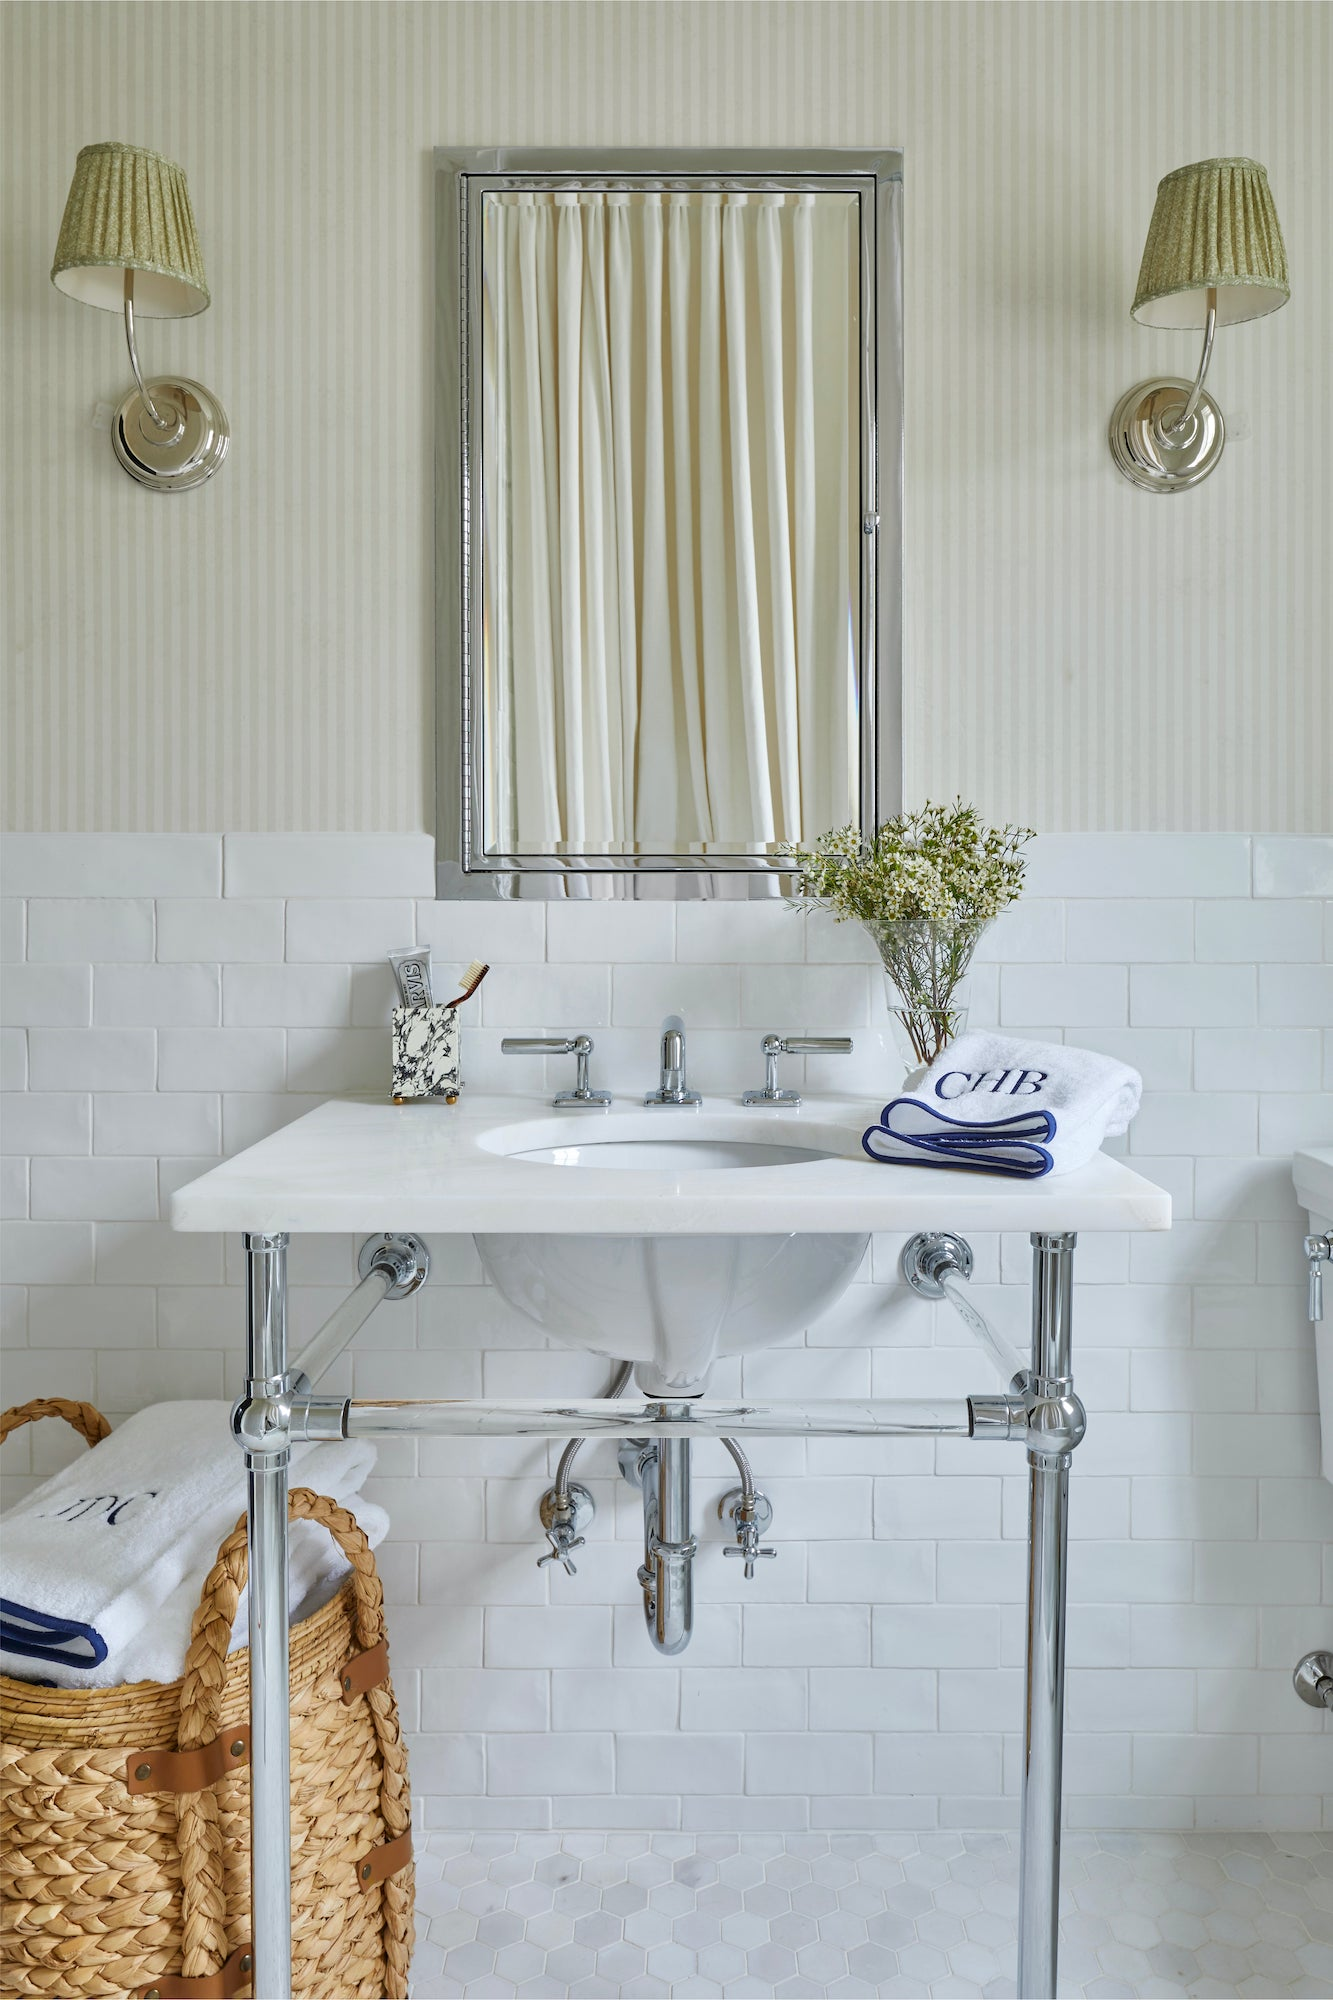 A bathroom Jeremy designed with cream striped wallpaper and navy piped towels.